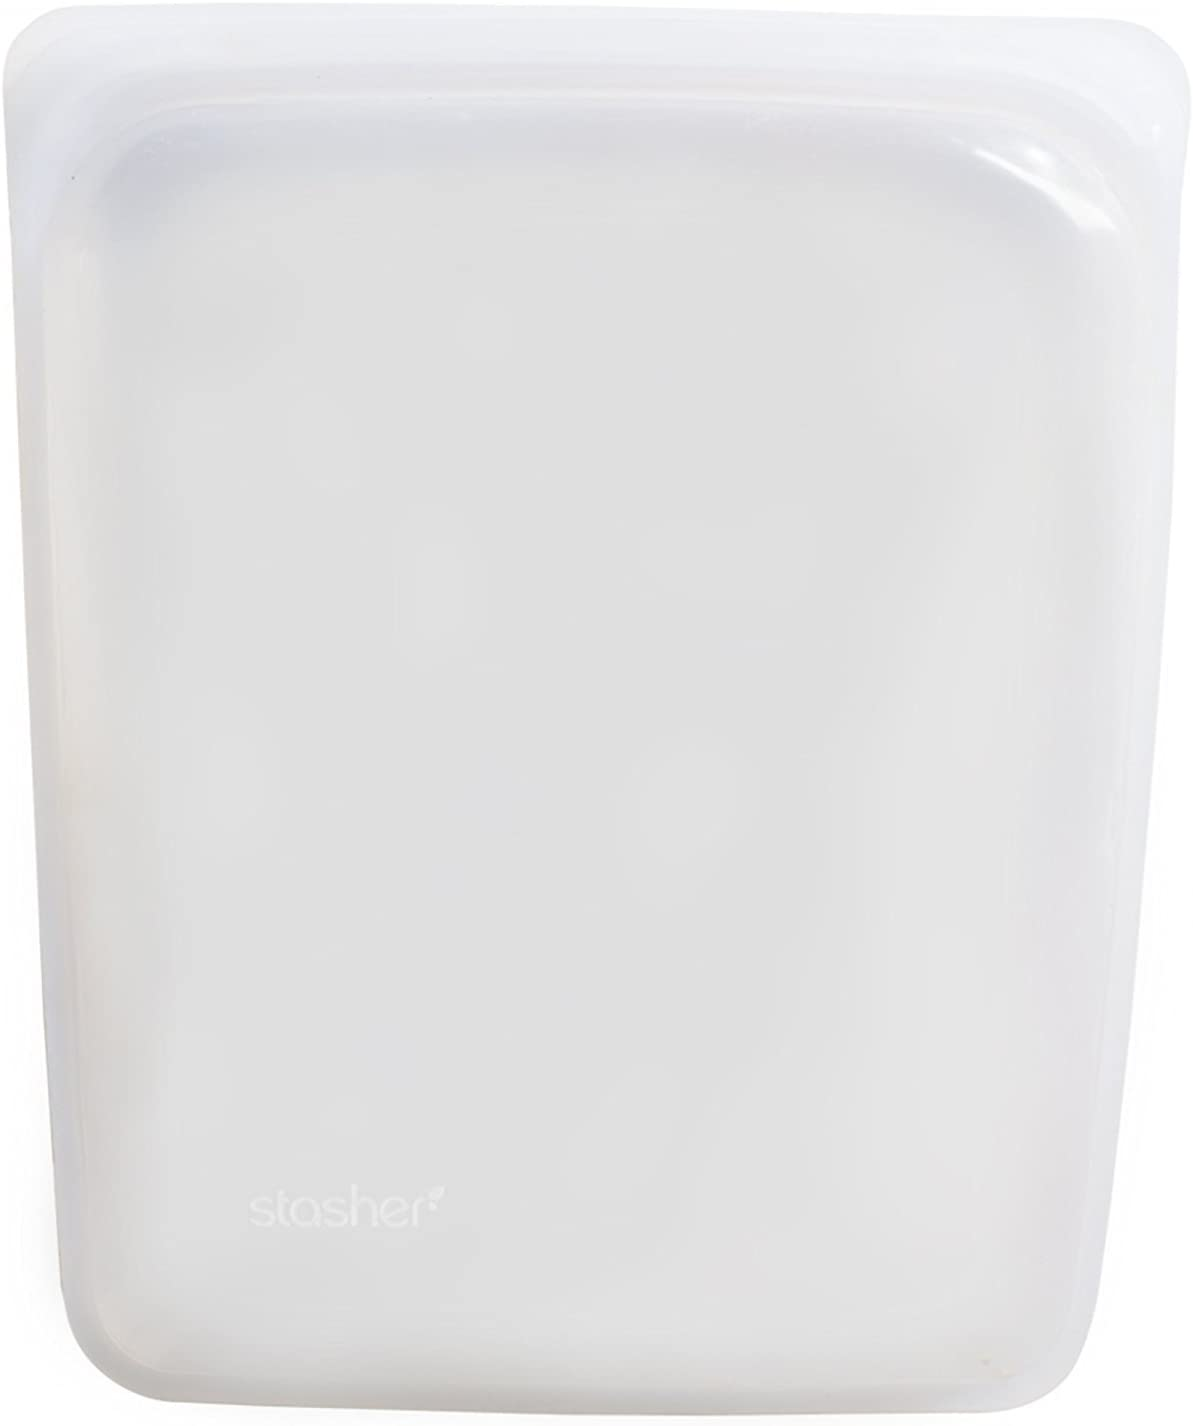 Stasher Re-Usable Food-Grade Platinum Silicone Half Gallon Bag for Eating from/Cooking, Freezing and Storing in/Sous Vide/Organising/Travelling, 26.05 cm x 20.95 cm, Clear